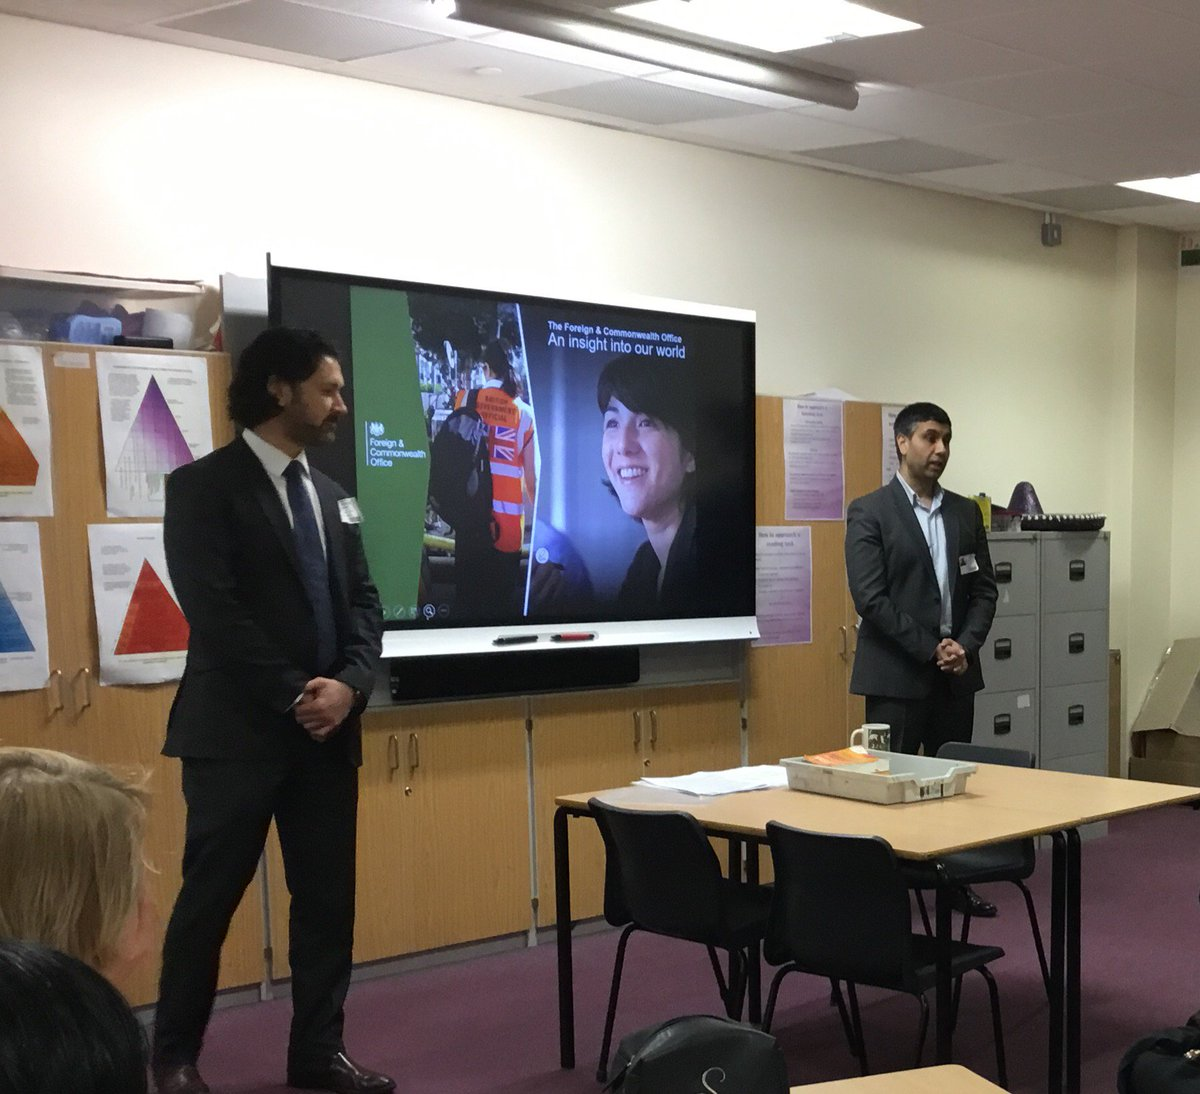 Thank you to Hasan and Simon from @foreignoffice for delivering a truly inspiring talk to our students on the work of the FCO and careers in diplomacy. #Careers #AimingHigh